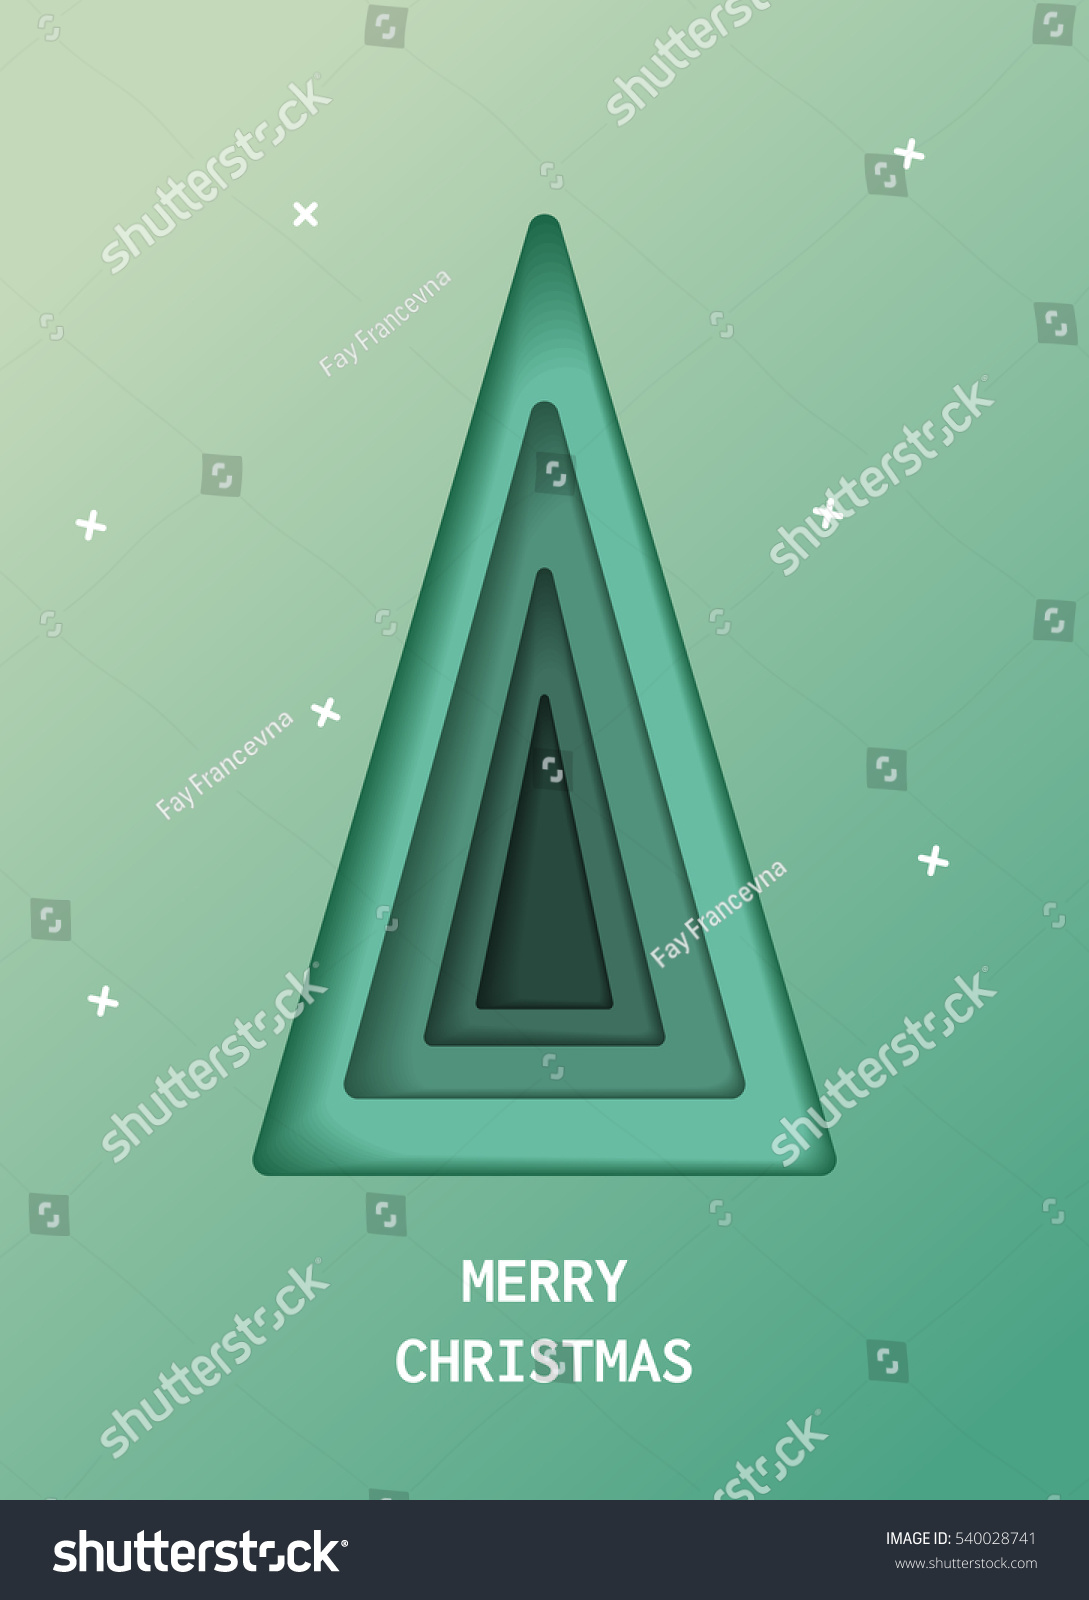 Green Christmas Tree Made Of Paper Original. Elements Of Design Material  For Holiday Cards.